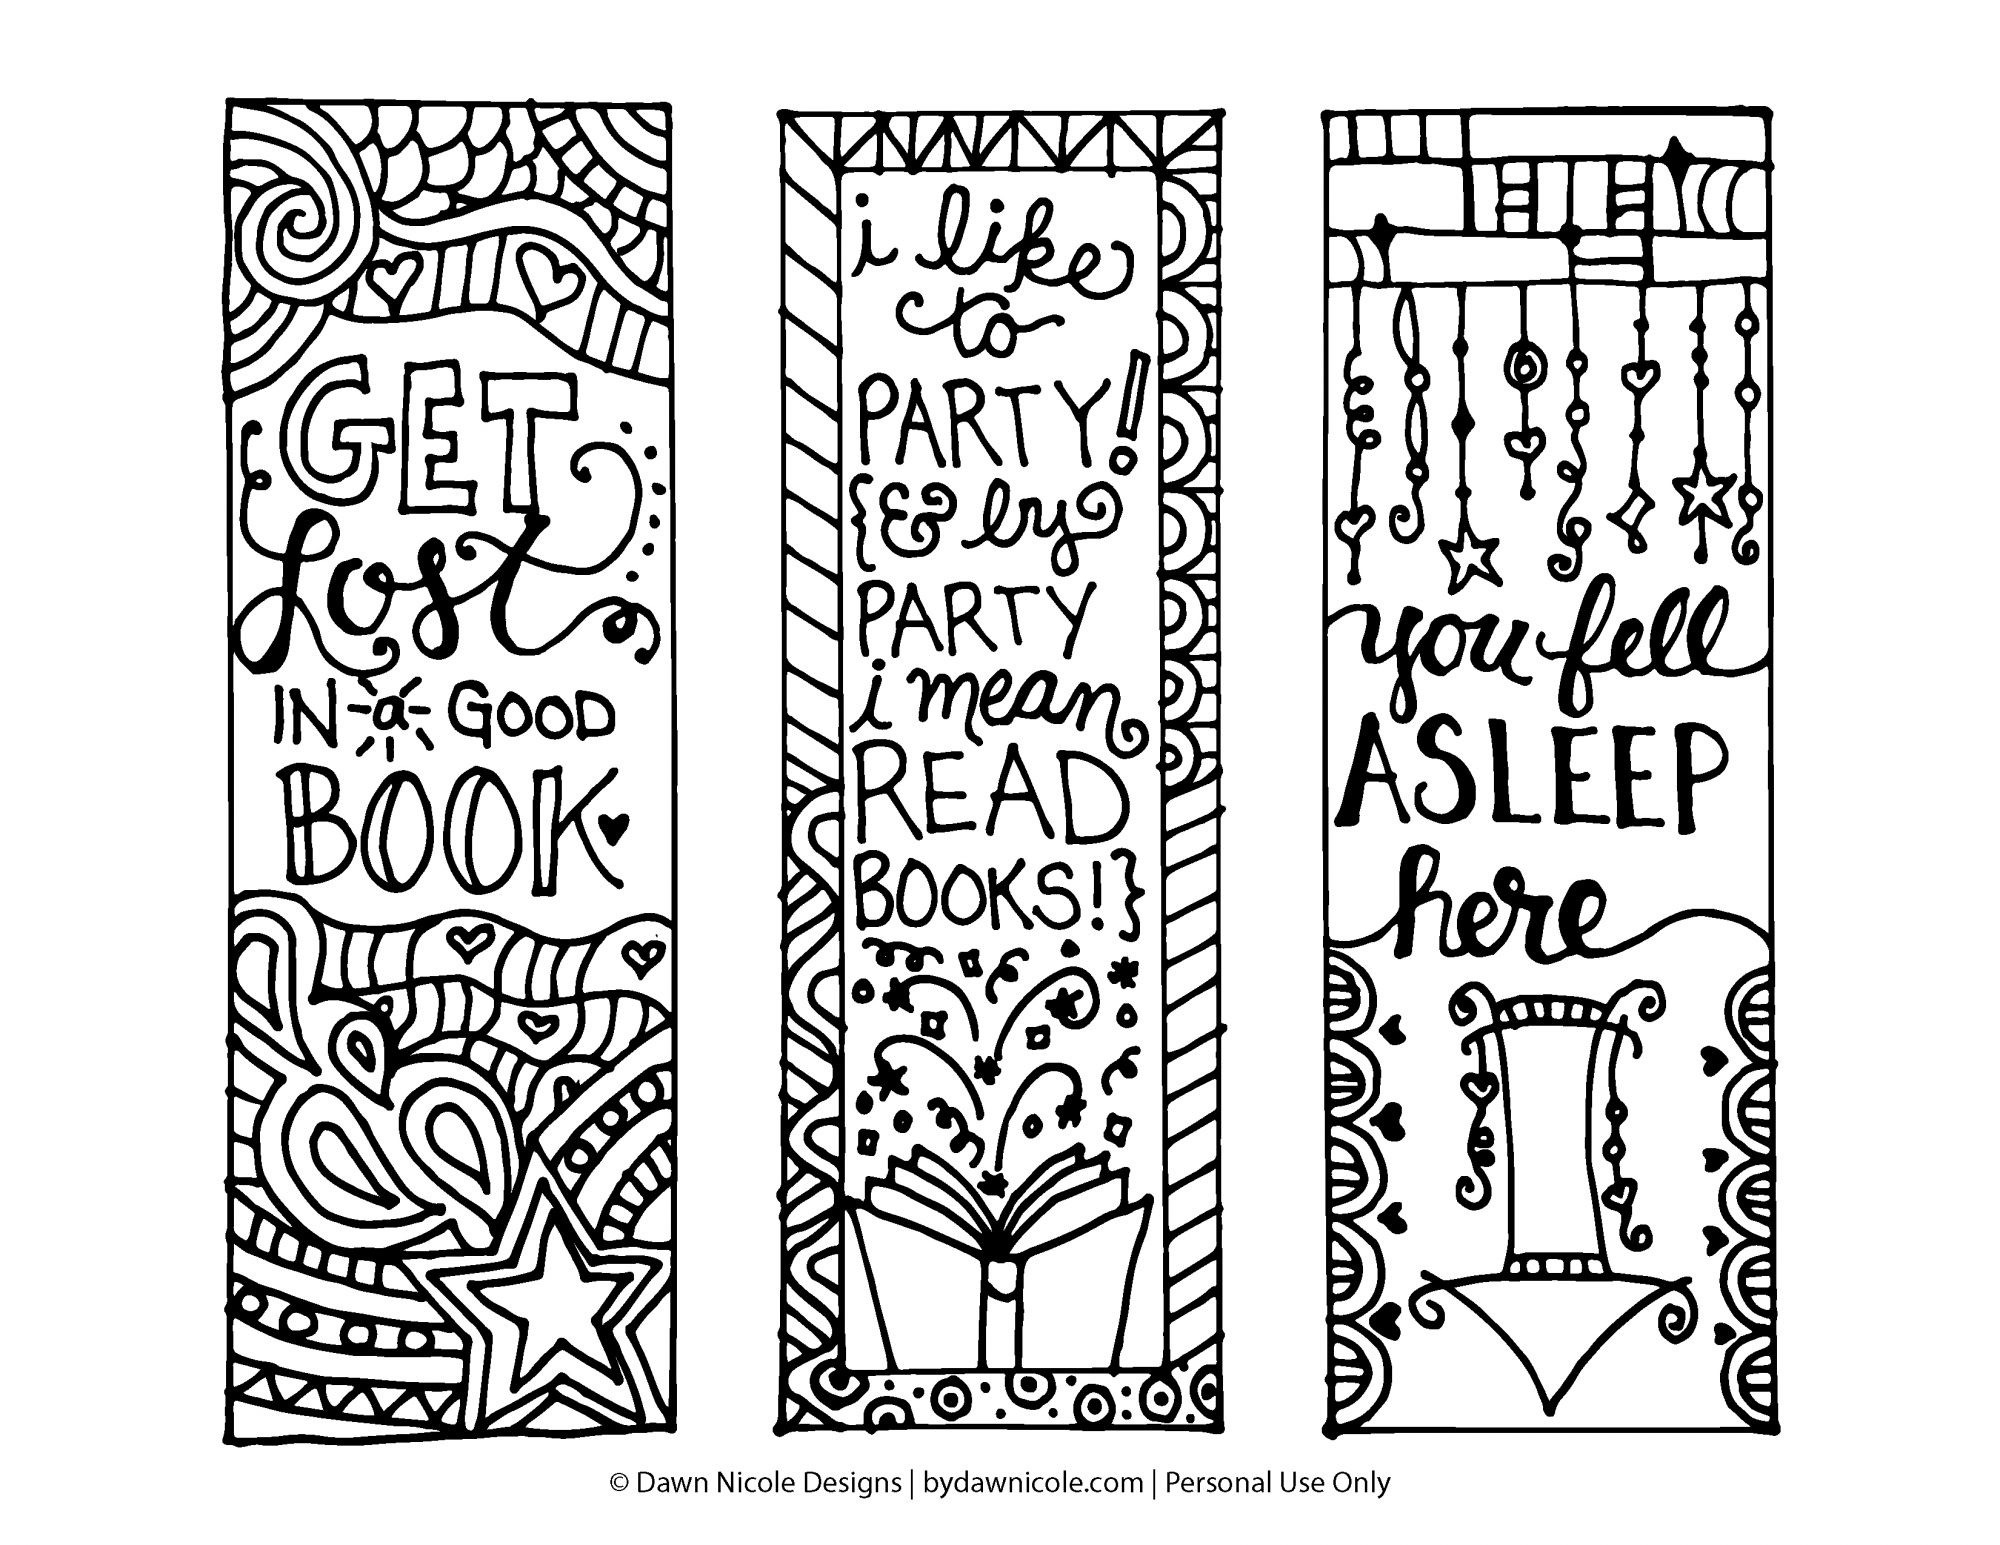 Bookmark Coloring Pages Printable | World Of Printable And Chart intended for Bookmark Designs To Print Black And White 25873